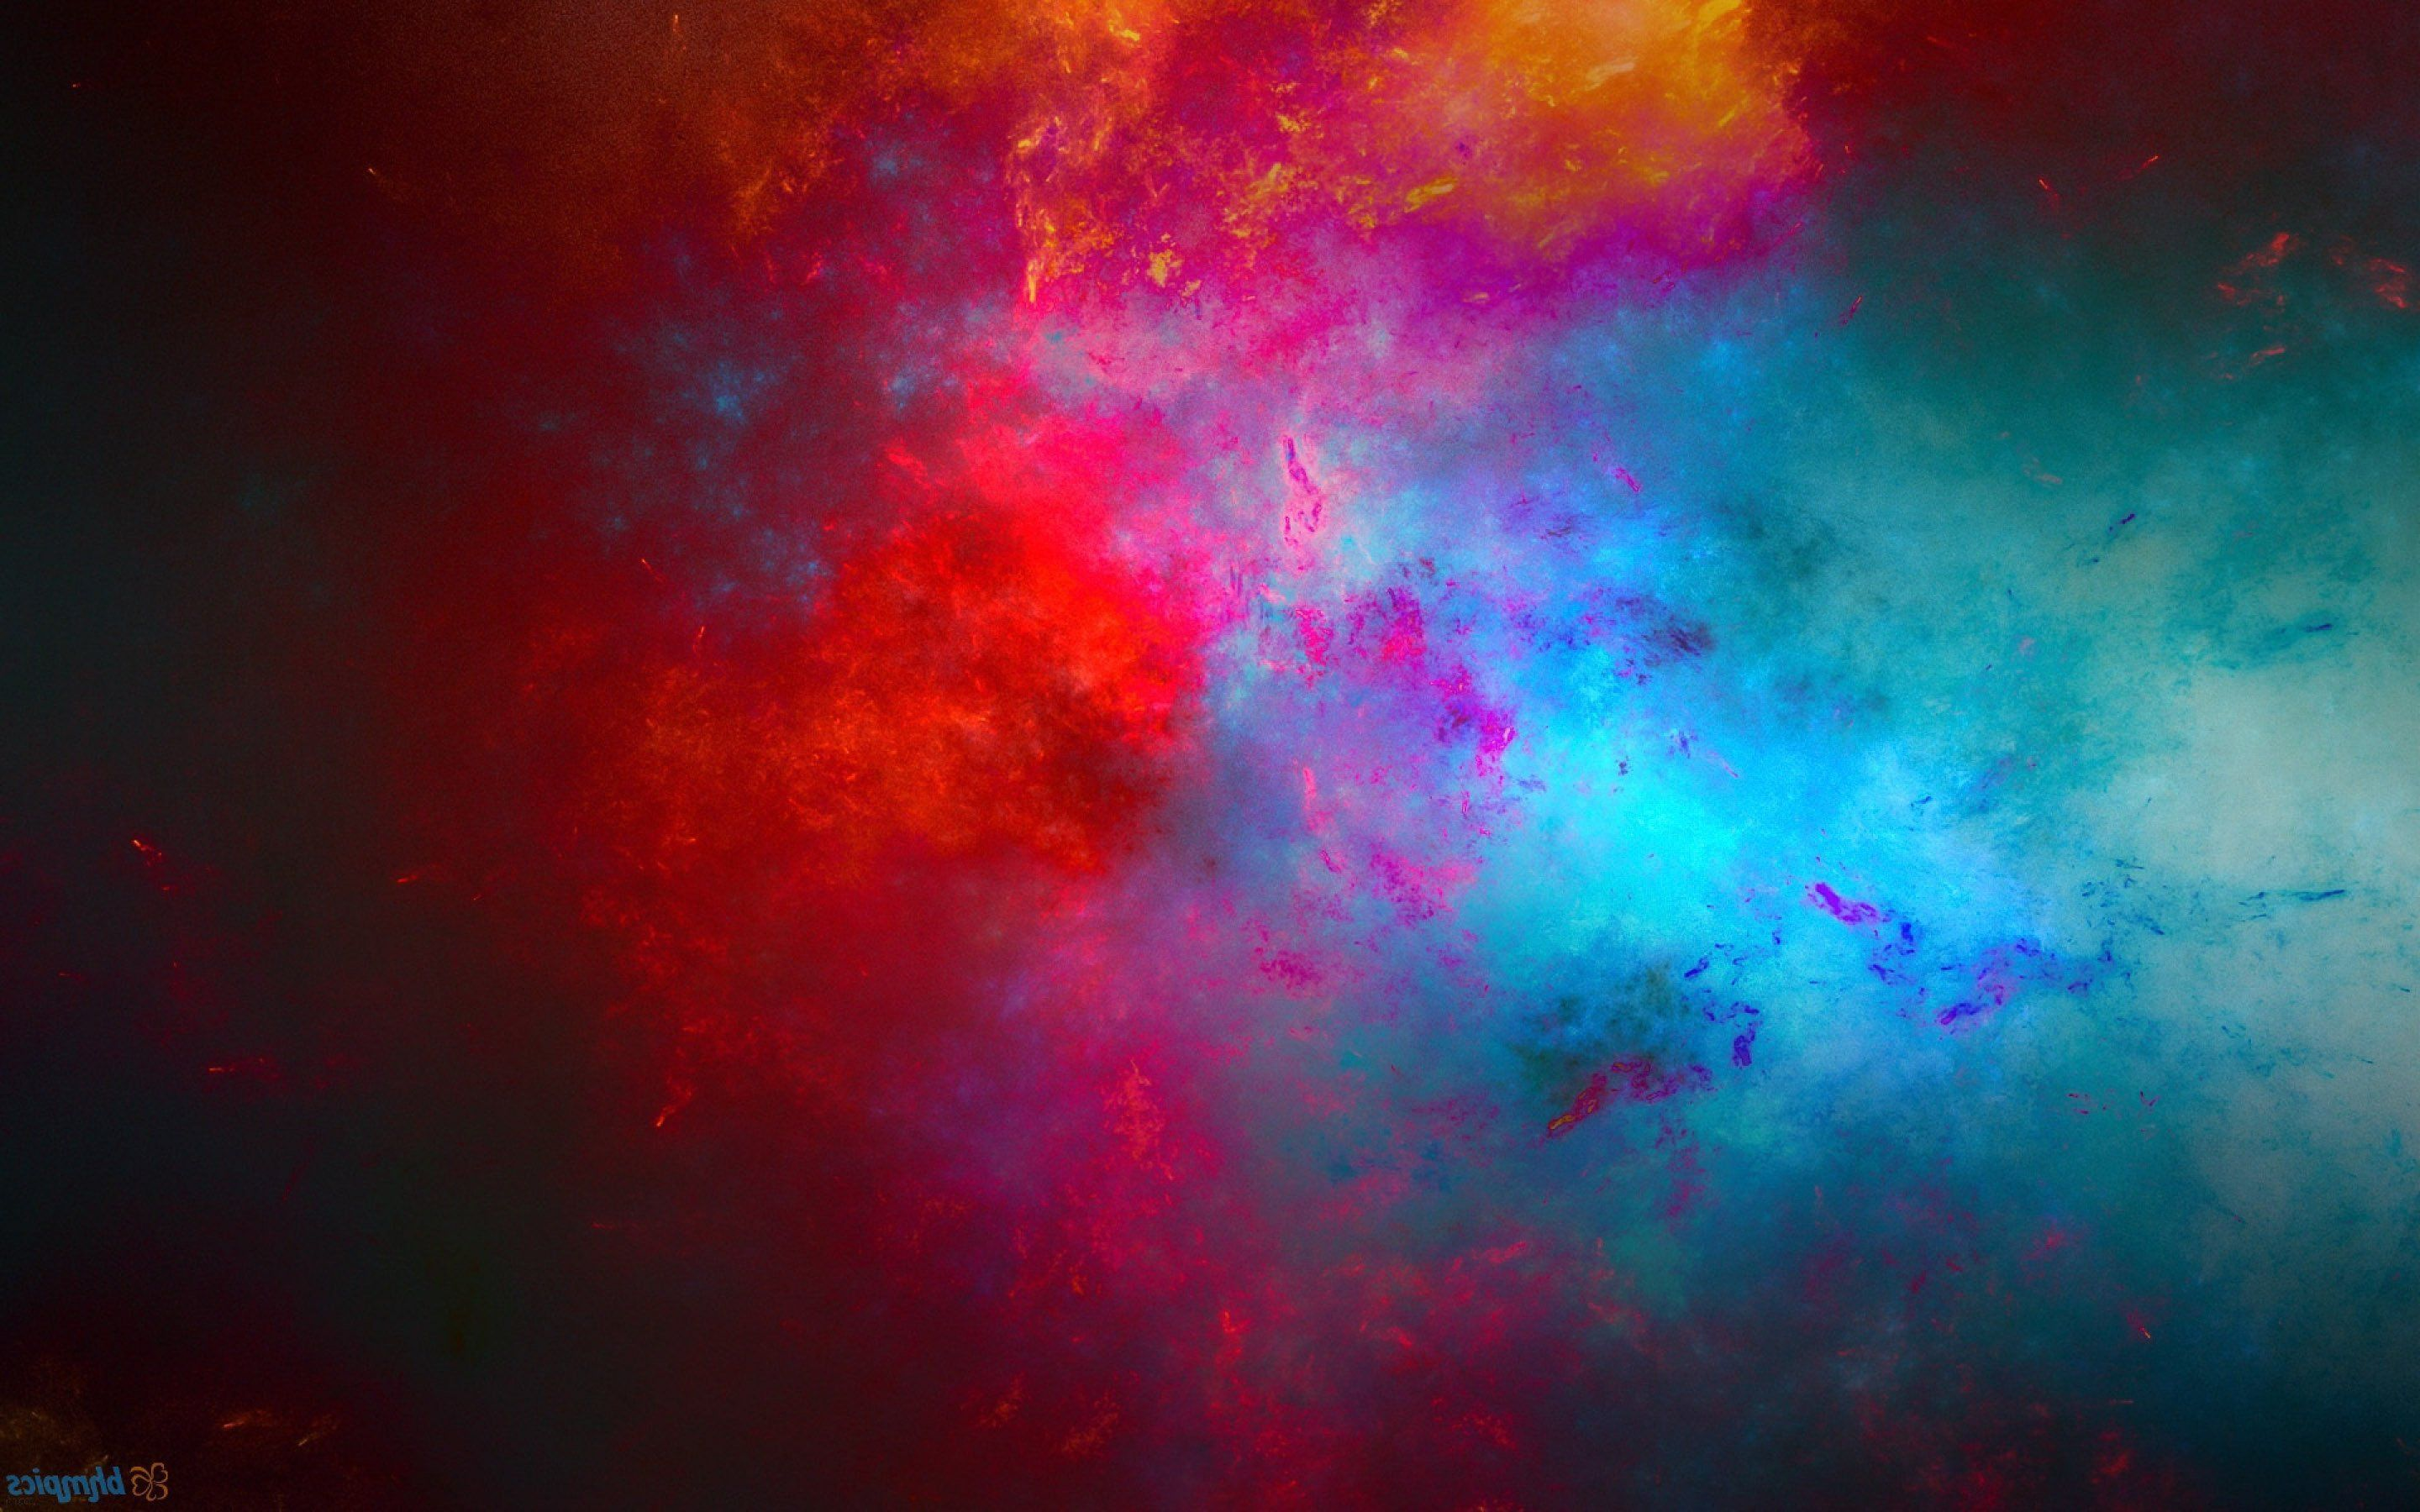 Red And Blue Galaxy Wallpapers Top Free Red And Blue Galaxy Backgrounds Wallpaperaccess